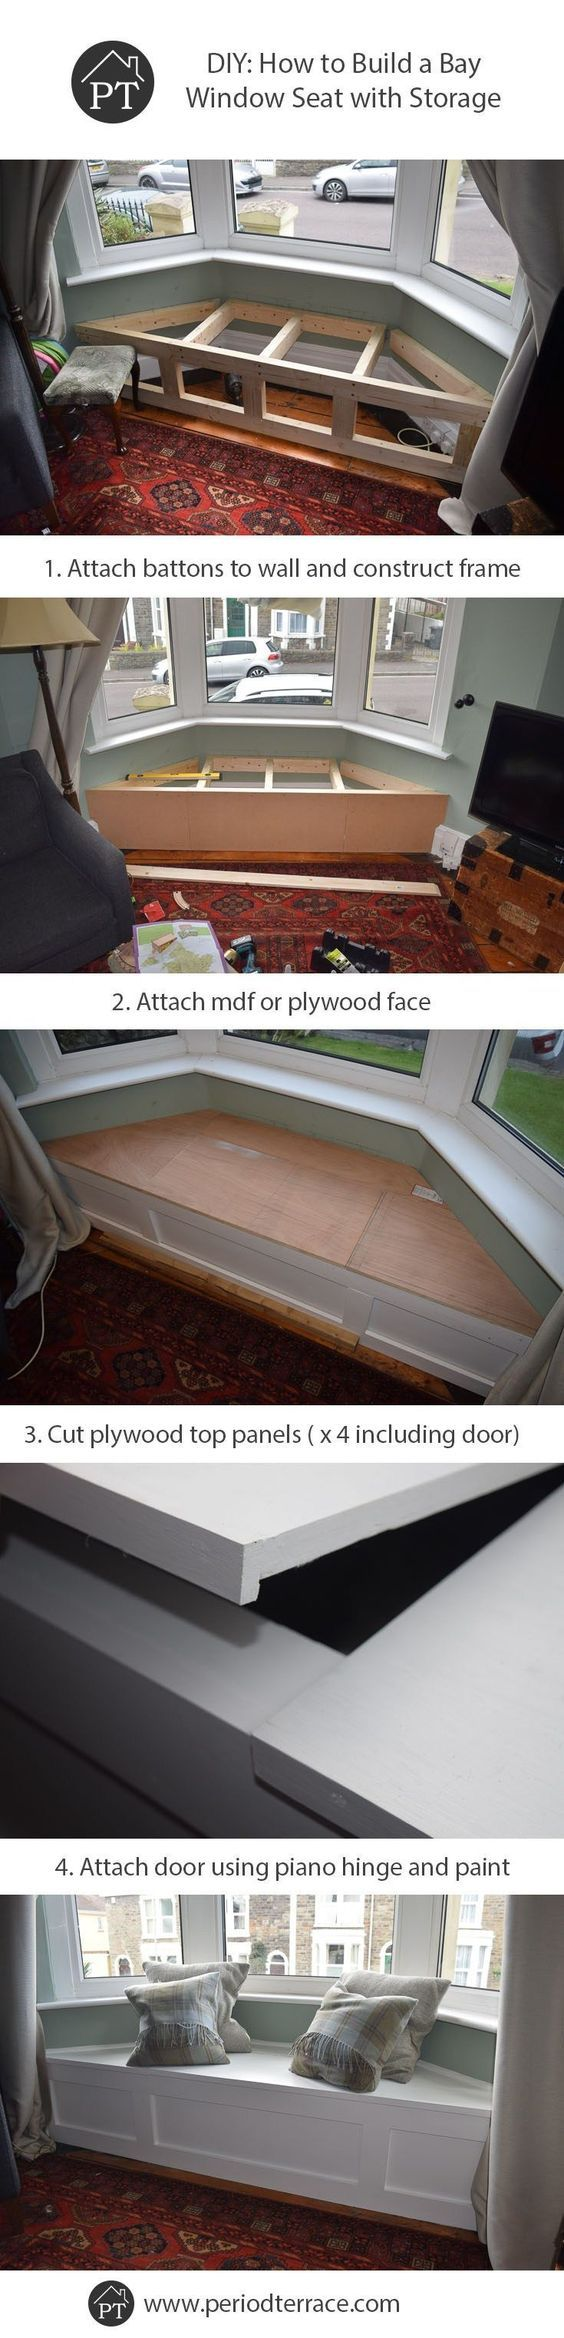 DIY post on how to build a bay window seat with storage that blends perfectly into a period home, and has a lifting door with plenty of storage room. * Read more at the image link.